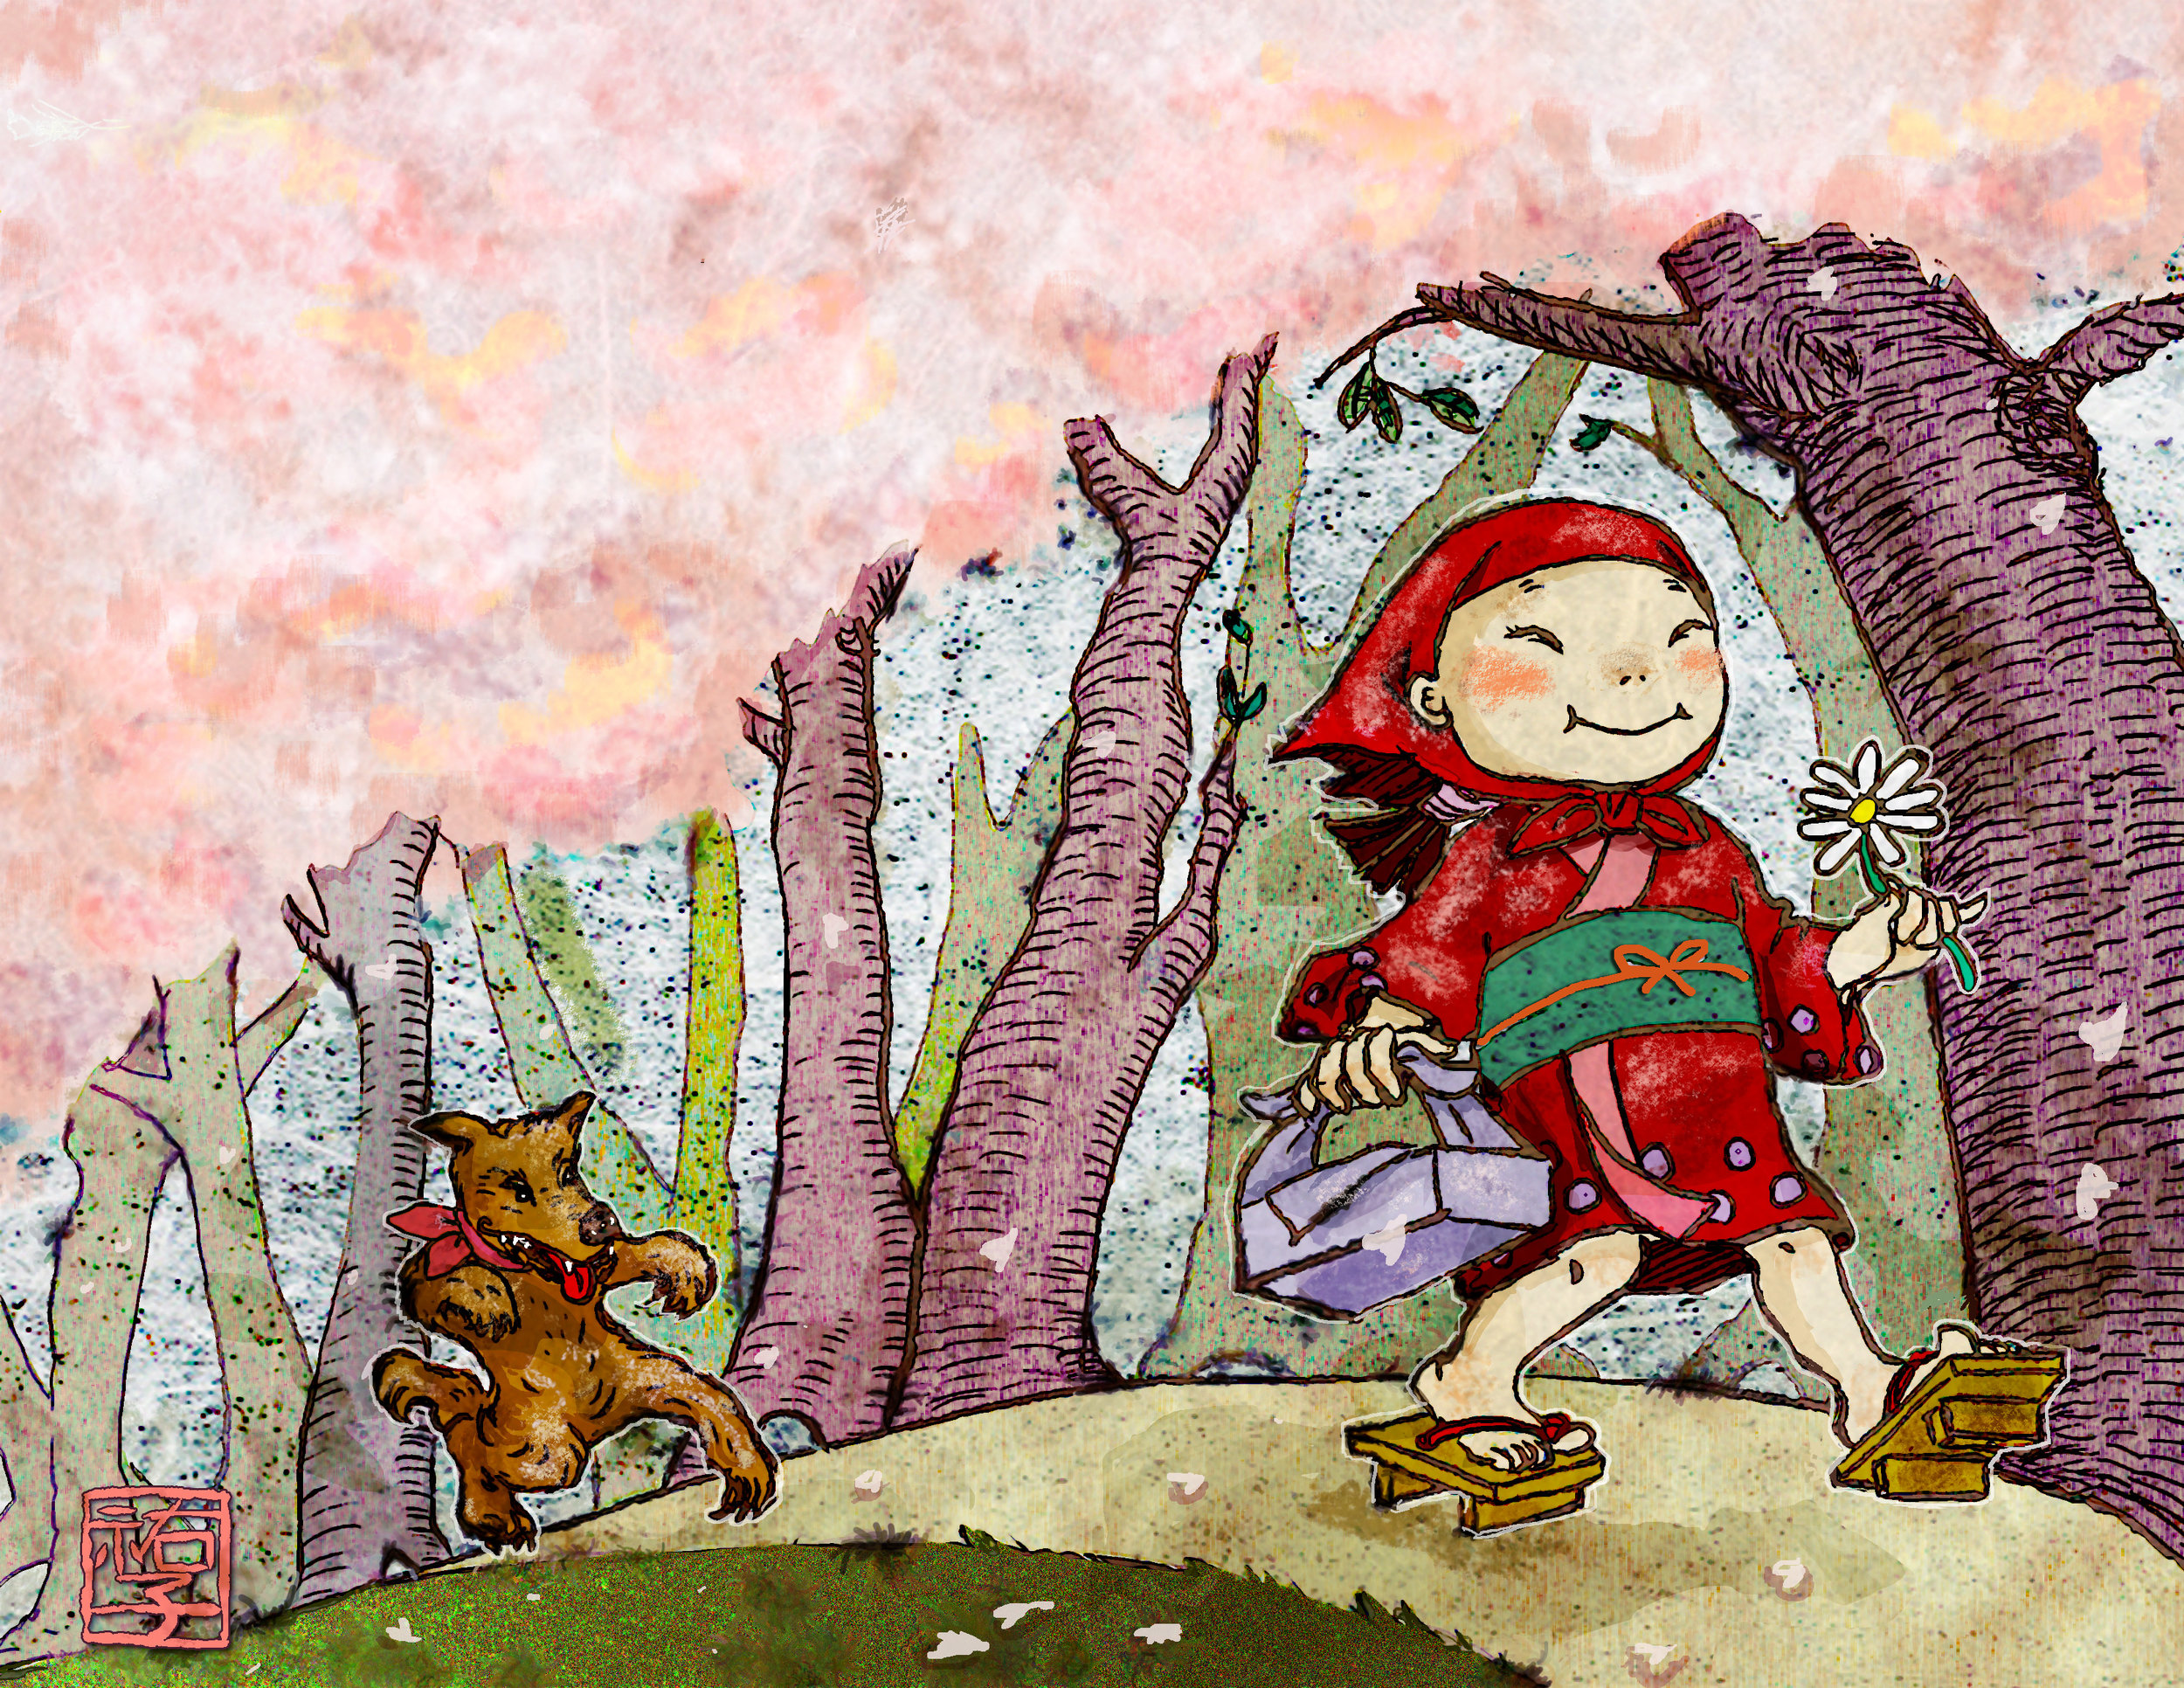 1401_Little-Red-Riding-Hood.jpg